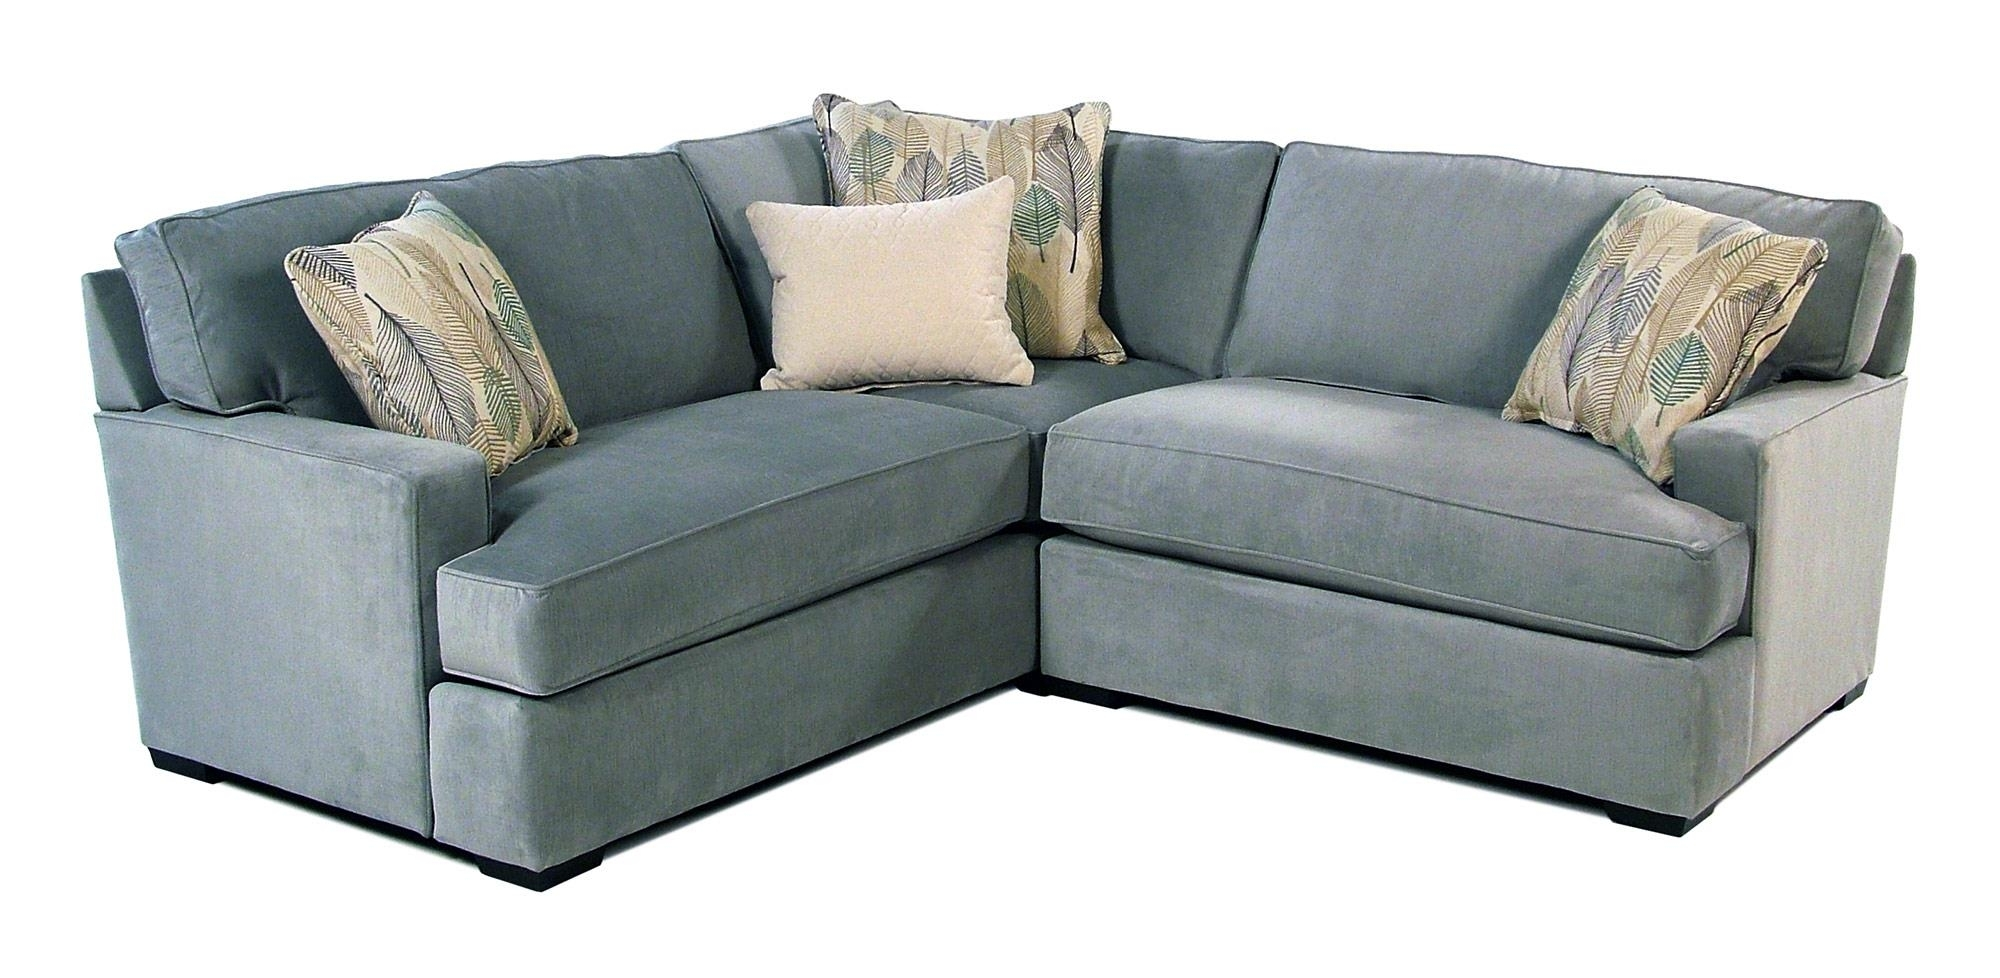 Blue Hawaii Contemporary 2 Piece Sectional | Rotmans | Sectional Pertaining To Hawaii Sectional Sofas (Image 2 of 10)